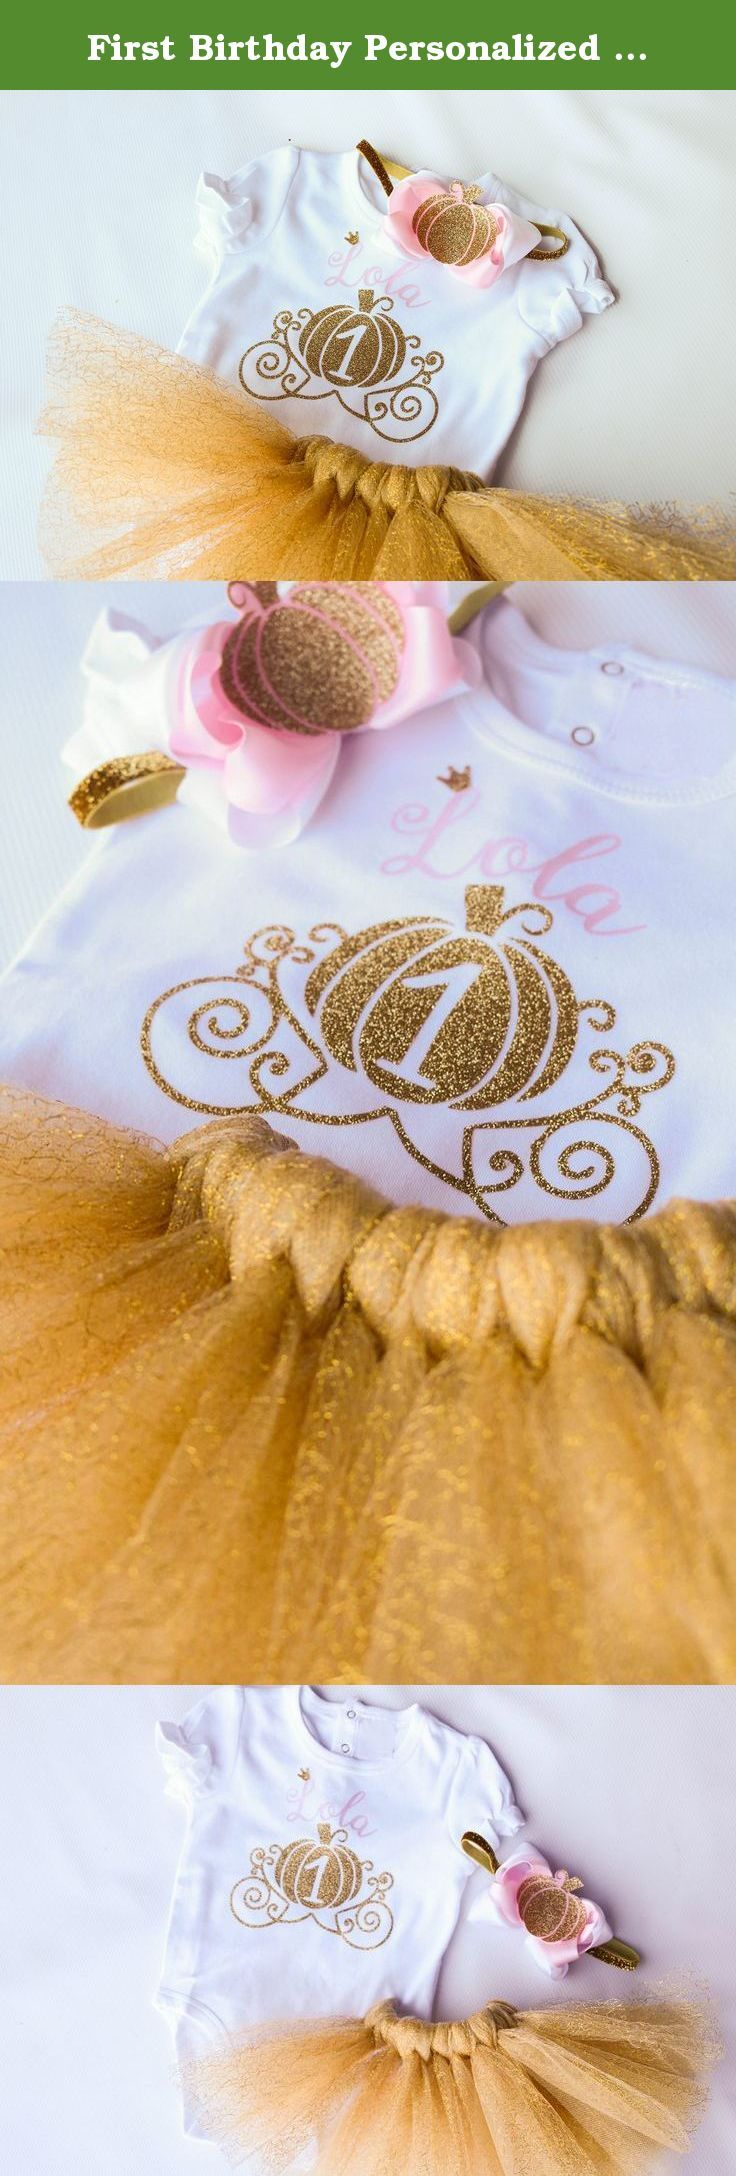 First Birthday Personalized Pumpkin Girl Outfit in Pink and Gold. First birthday 3 piece coordinating pink and glitter gold personalized baby girl pumpkin outfit set includes; tutu, bodysuit, and crown with a headband. Bodysuit - Super girly look in a bodysuit style! Thick and soft, we don't skimp on quality on these bodysuits, fit true to size and are adorned with modern fun script font and personalized with shiniest no shed glitter. Tutu - Full, two tone, pink and gold tutu features…